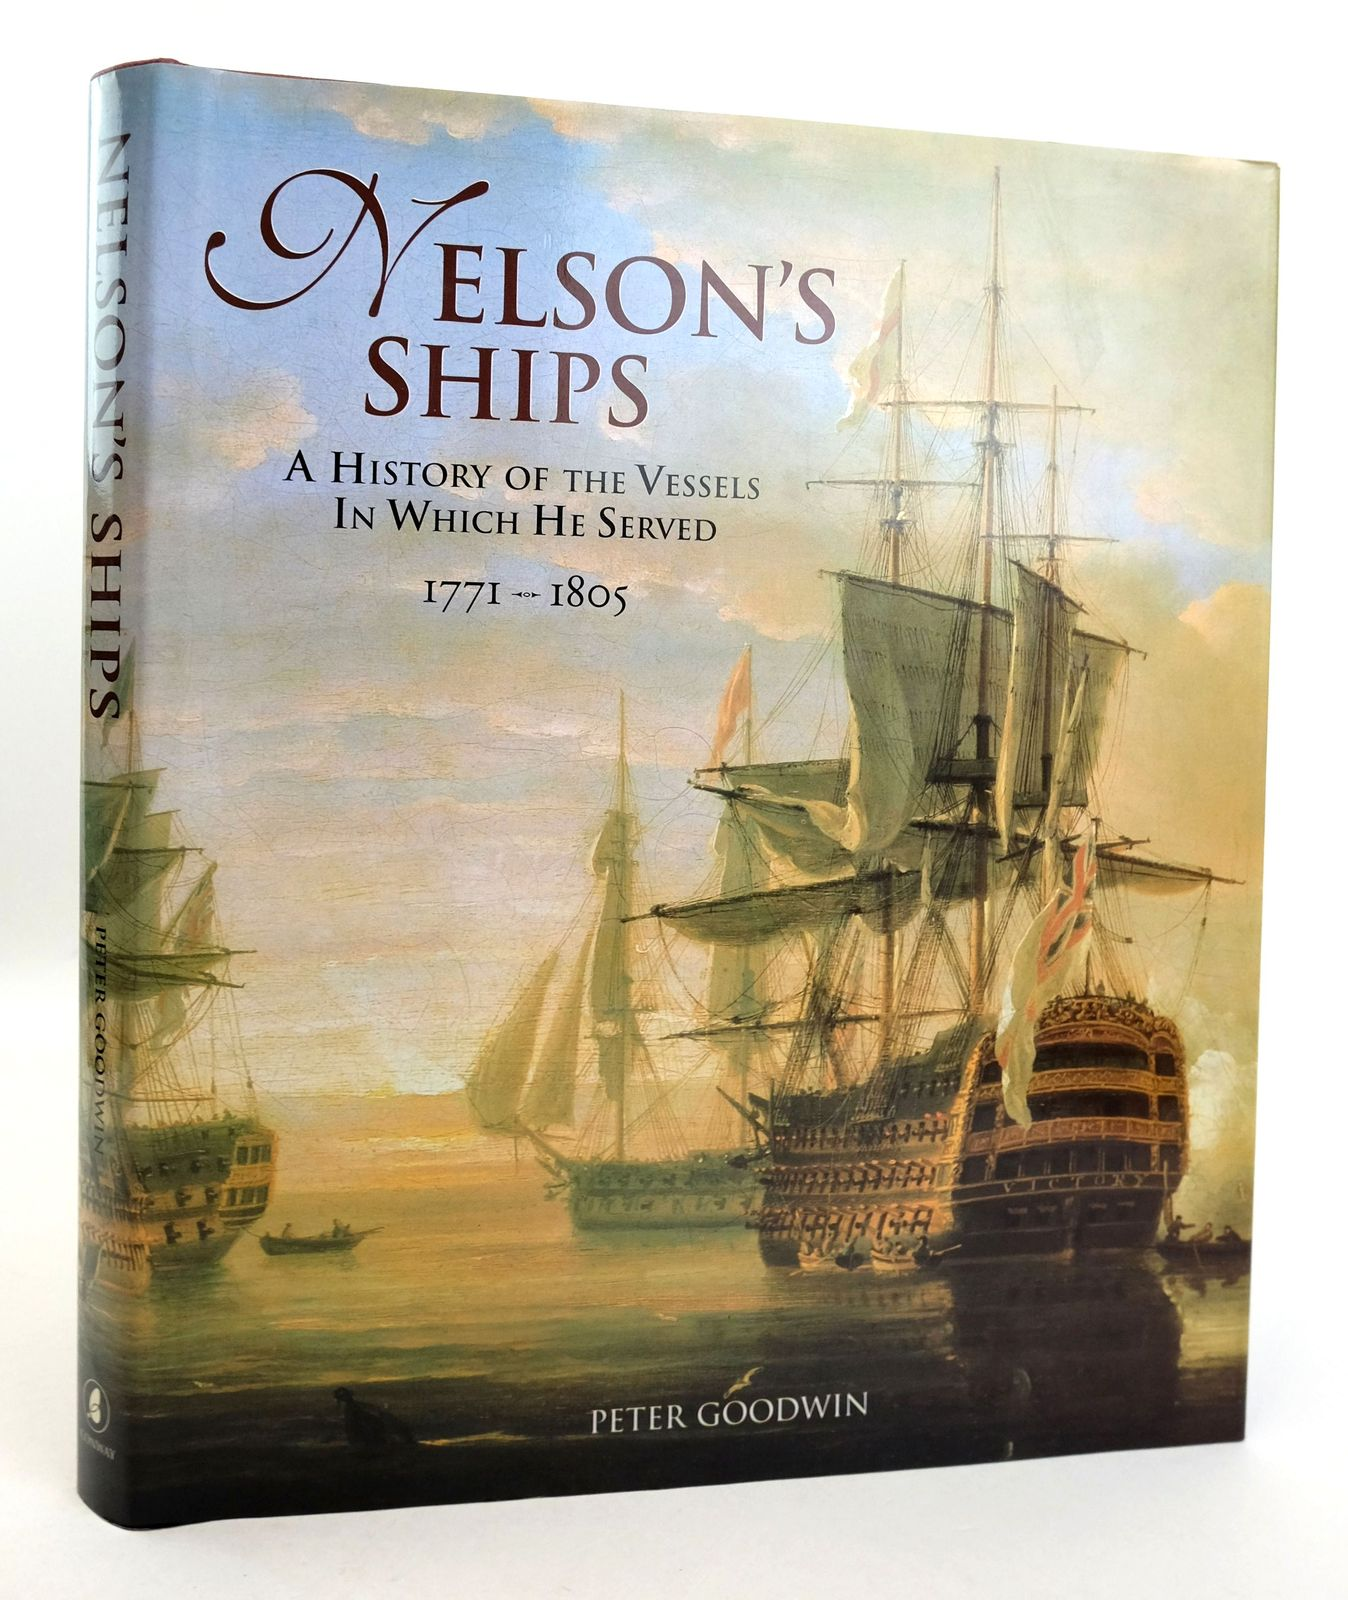 Photo of NELSON'S SHIPS: A HISTORY OF THE VESSELS IN WHICH HE SERVED 1771 - 1805 written by Goodwin, Peter published by Conway Maritime Press (STOCK CODE: 1819503)  for sale by Stella & Rose's Books